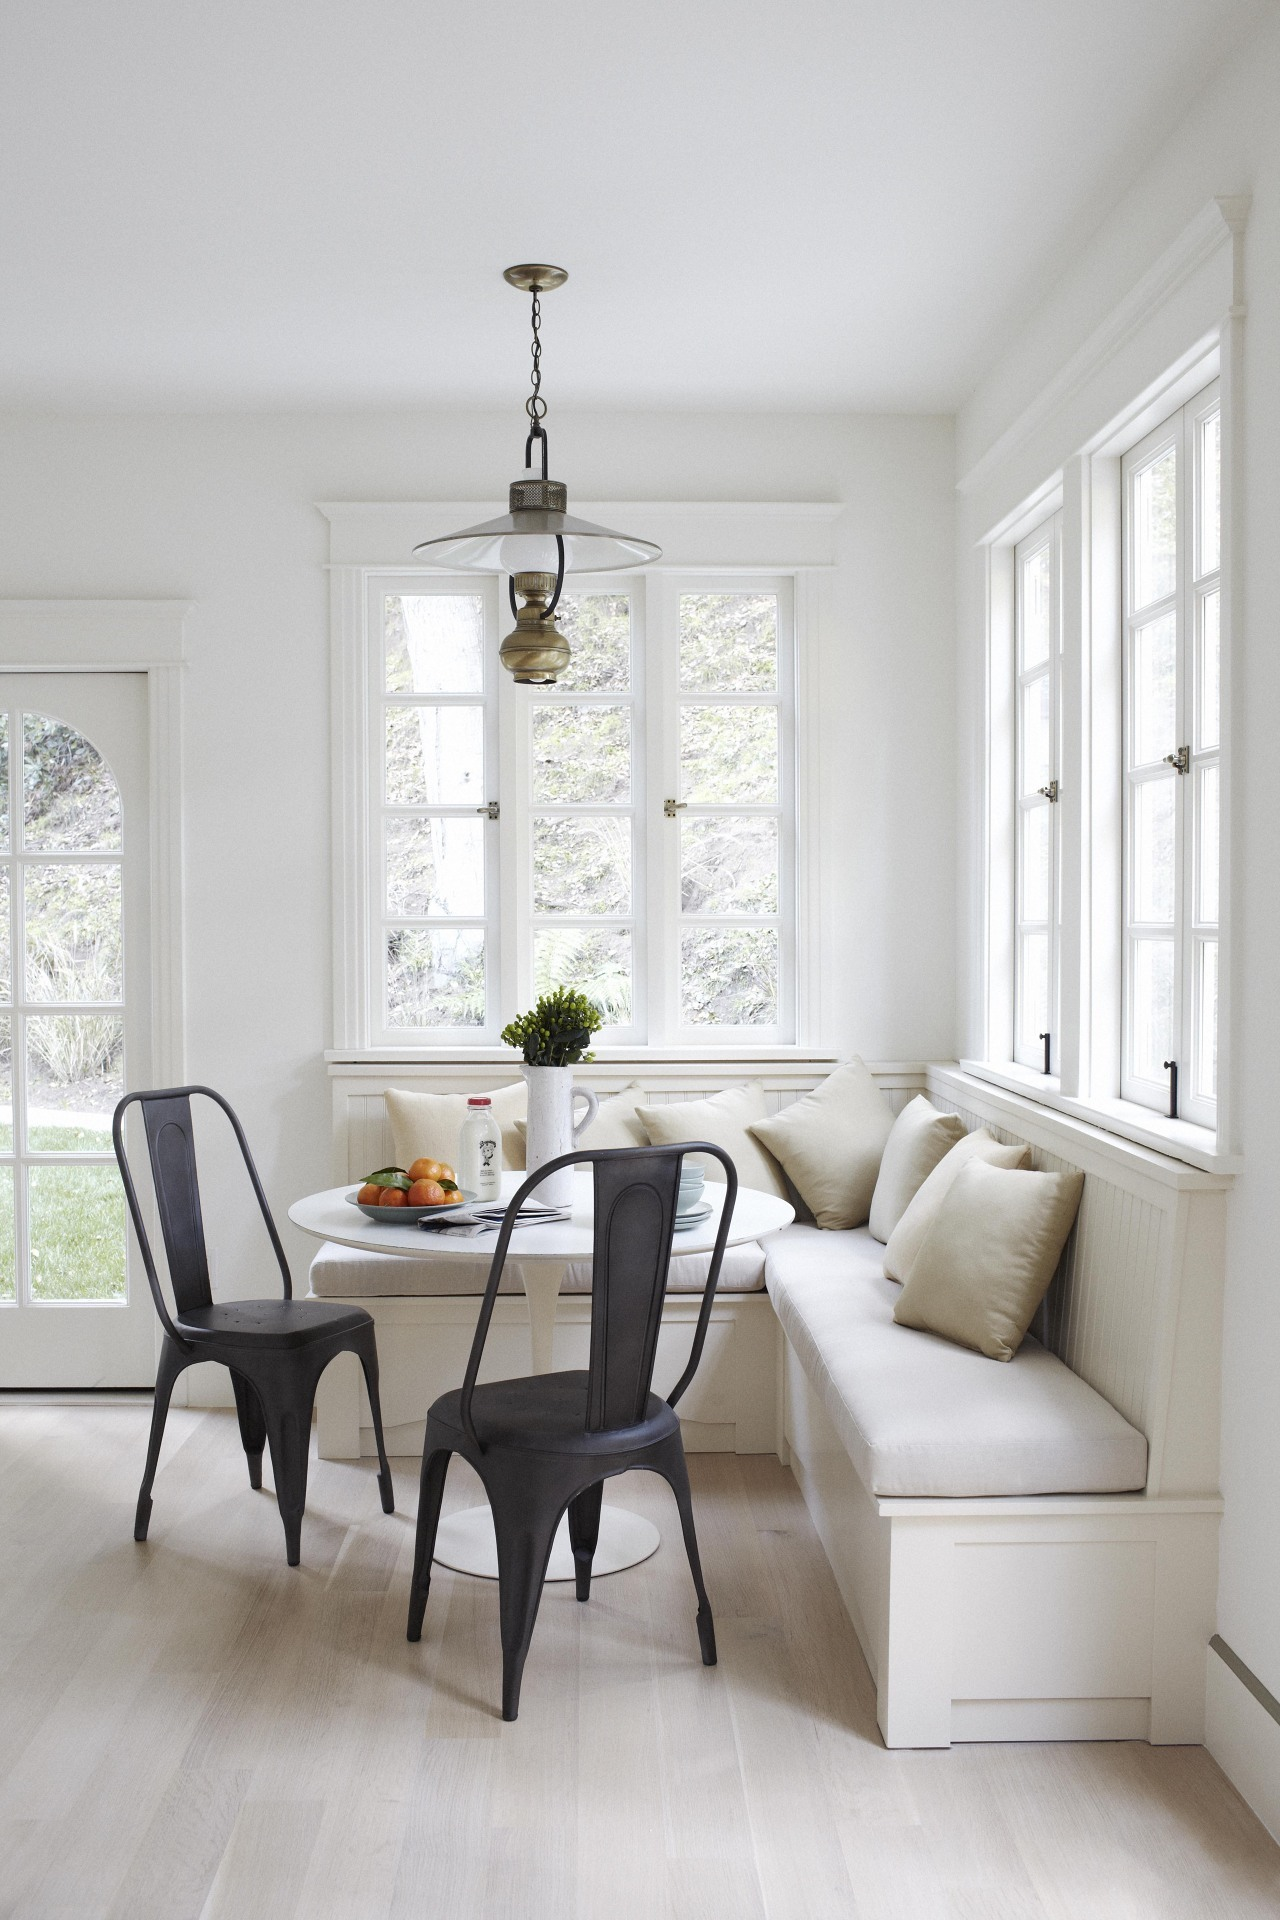 Simplistic banquette paired with dark chairs